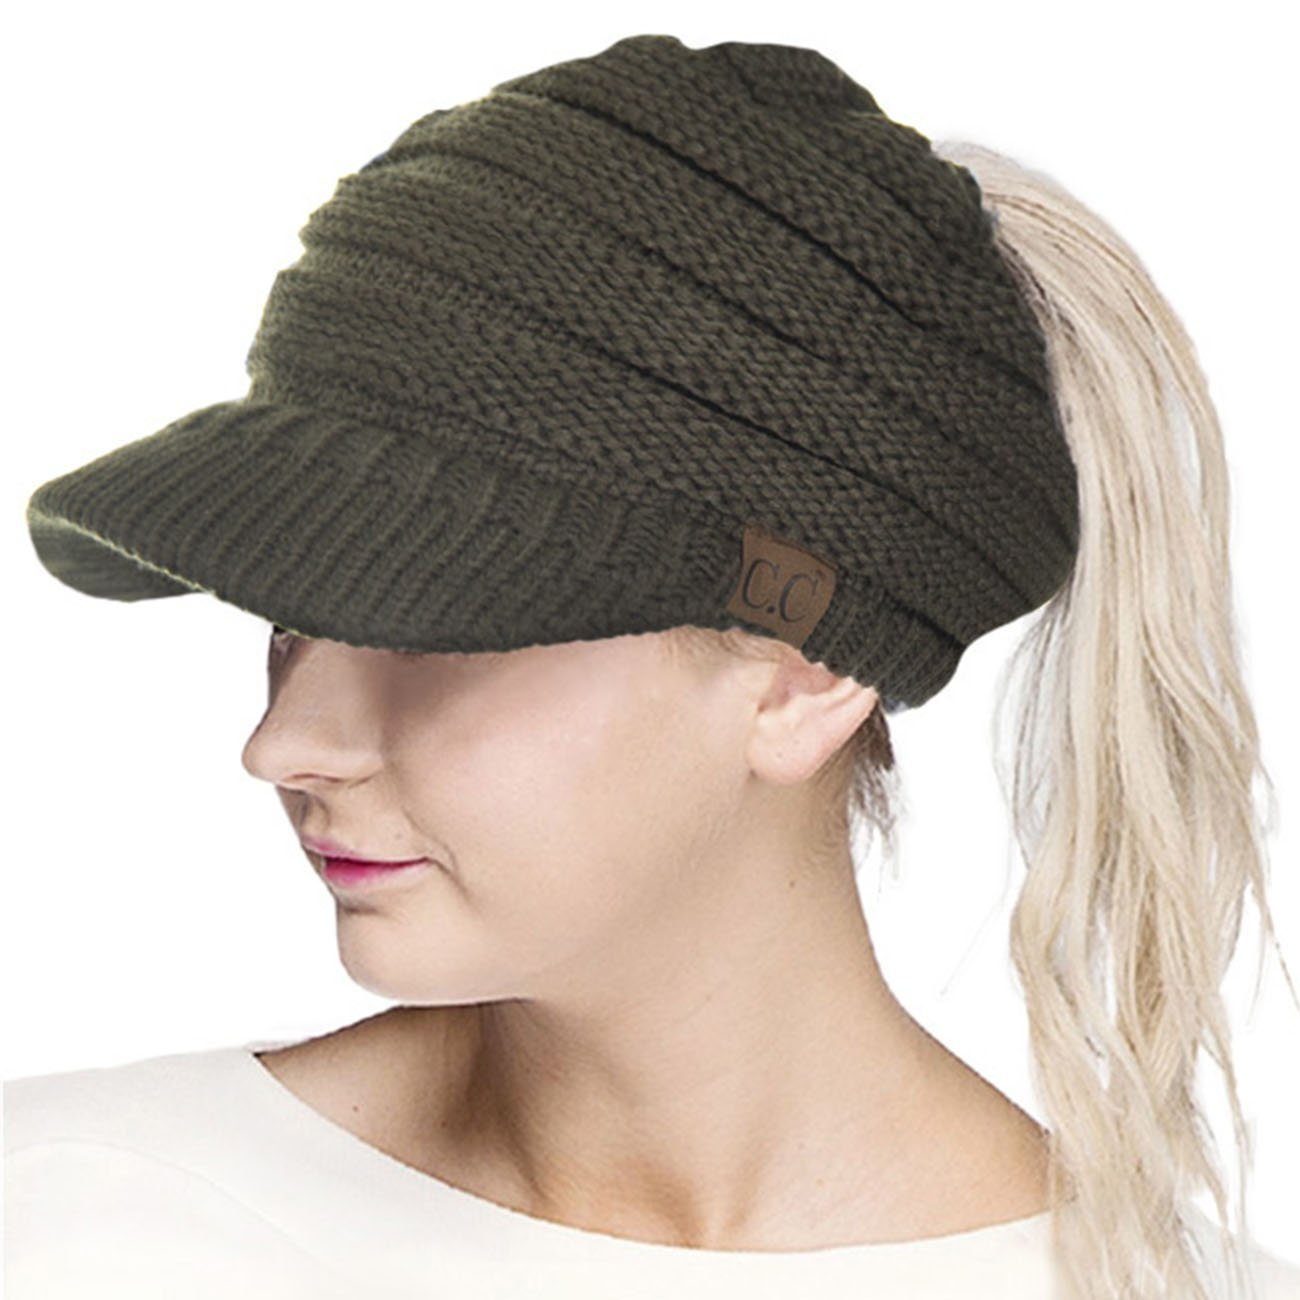 ScarvesMe CC Brim Beanietail Ponytail Messy Bun Solid Ribbed Beanie Hat Sun Cap (New Olive)